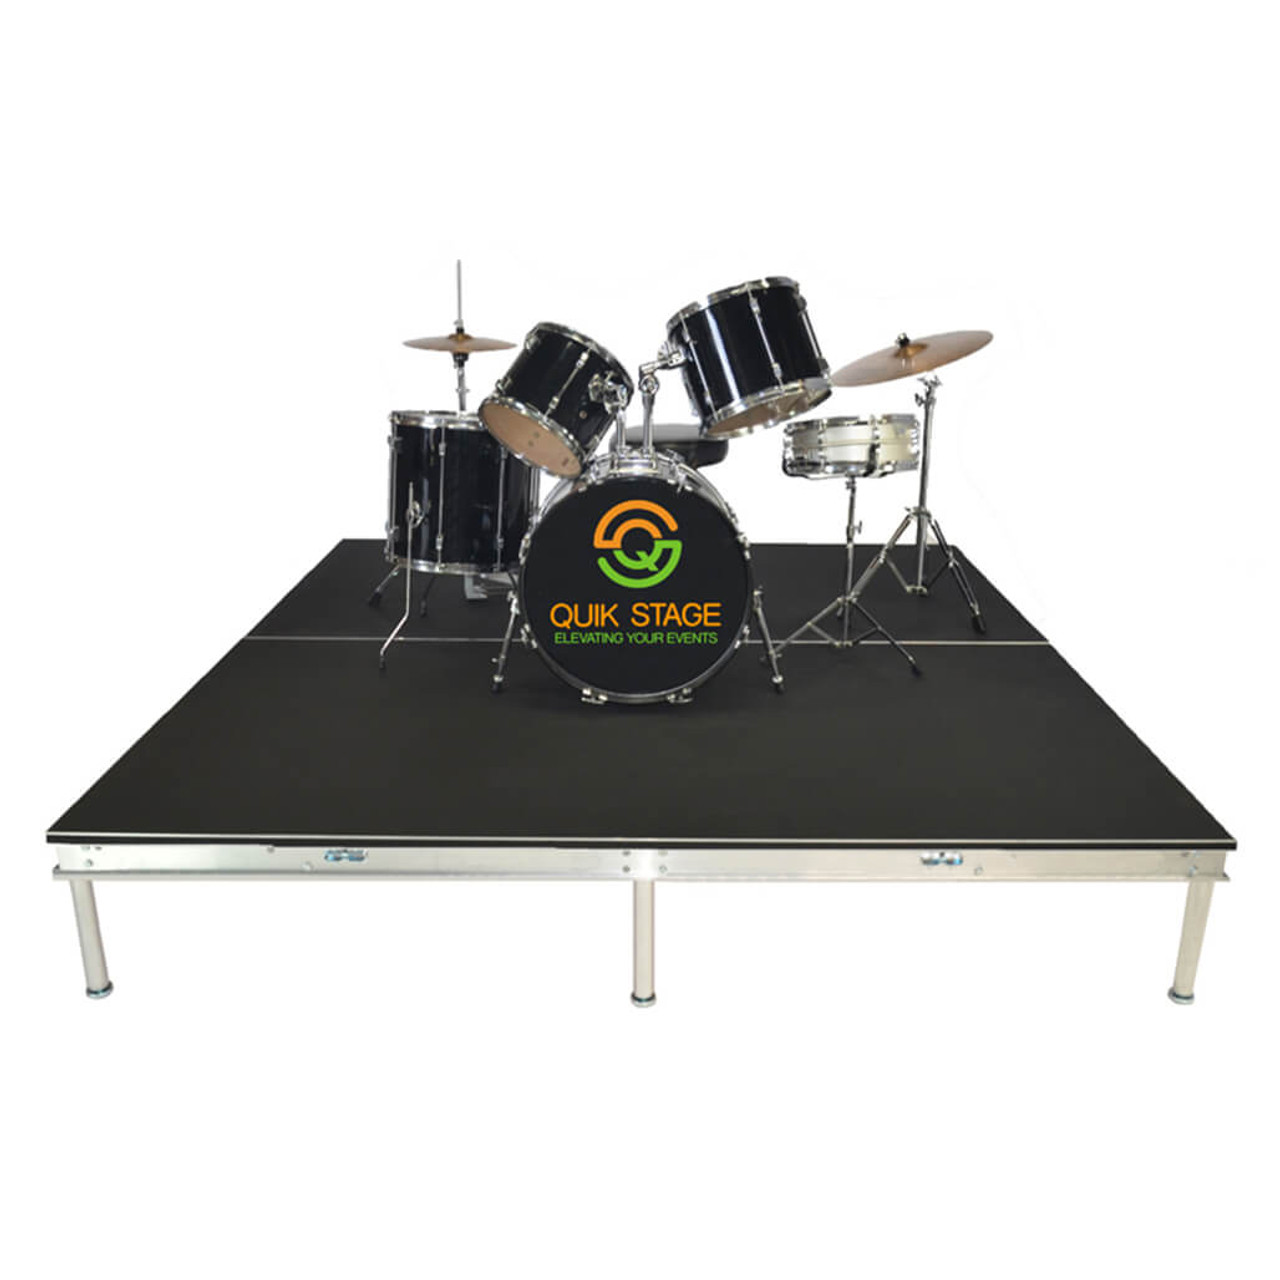 Quik Stage 4' x 12' High Portable Stage Package with Black Polyvinyl Non-Skid Surface. Additional Heights and Surfaces Available - Drum Riser without skirting